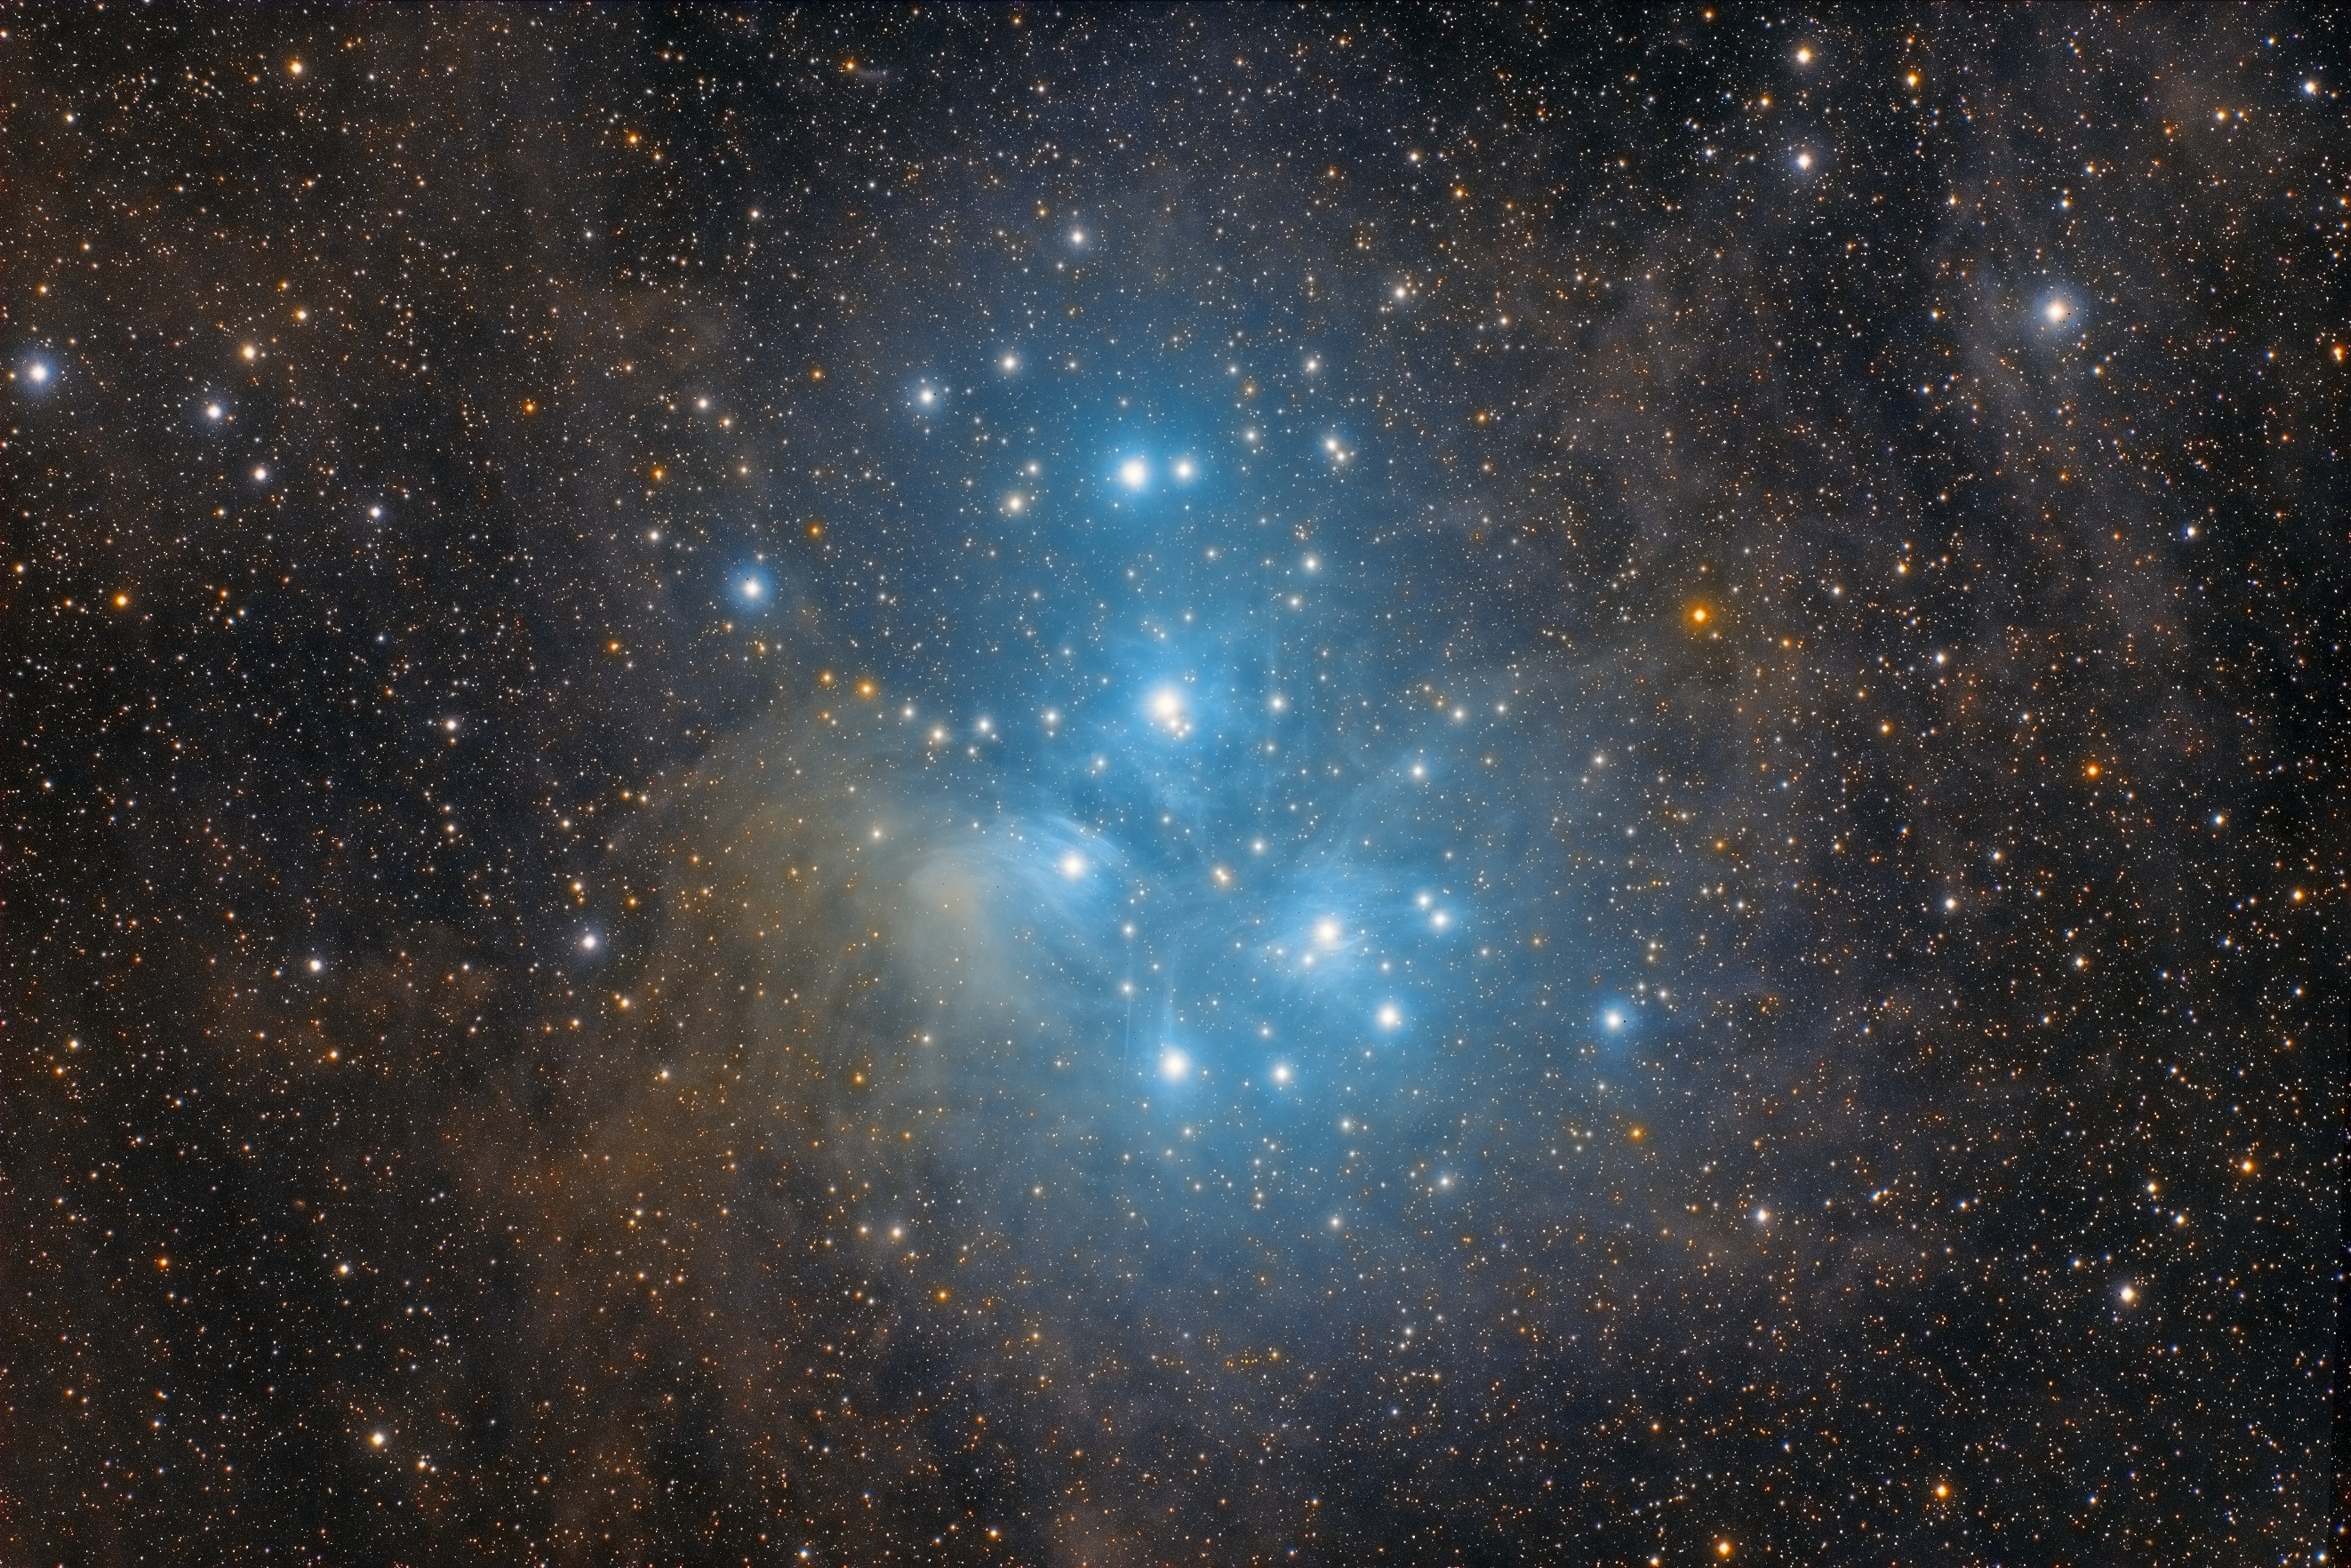 Apod 2013 September 18 M45 The Pleiades Star Cluster